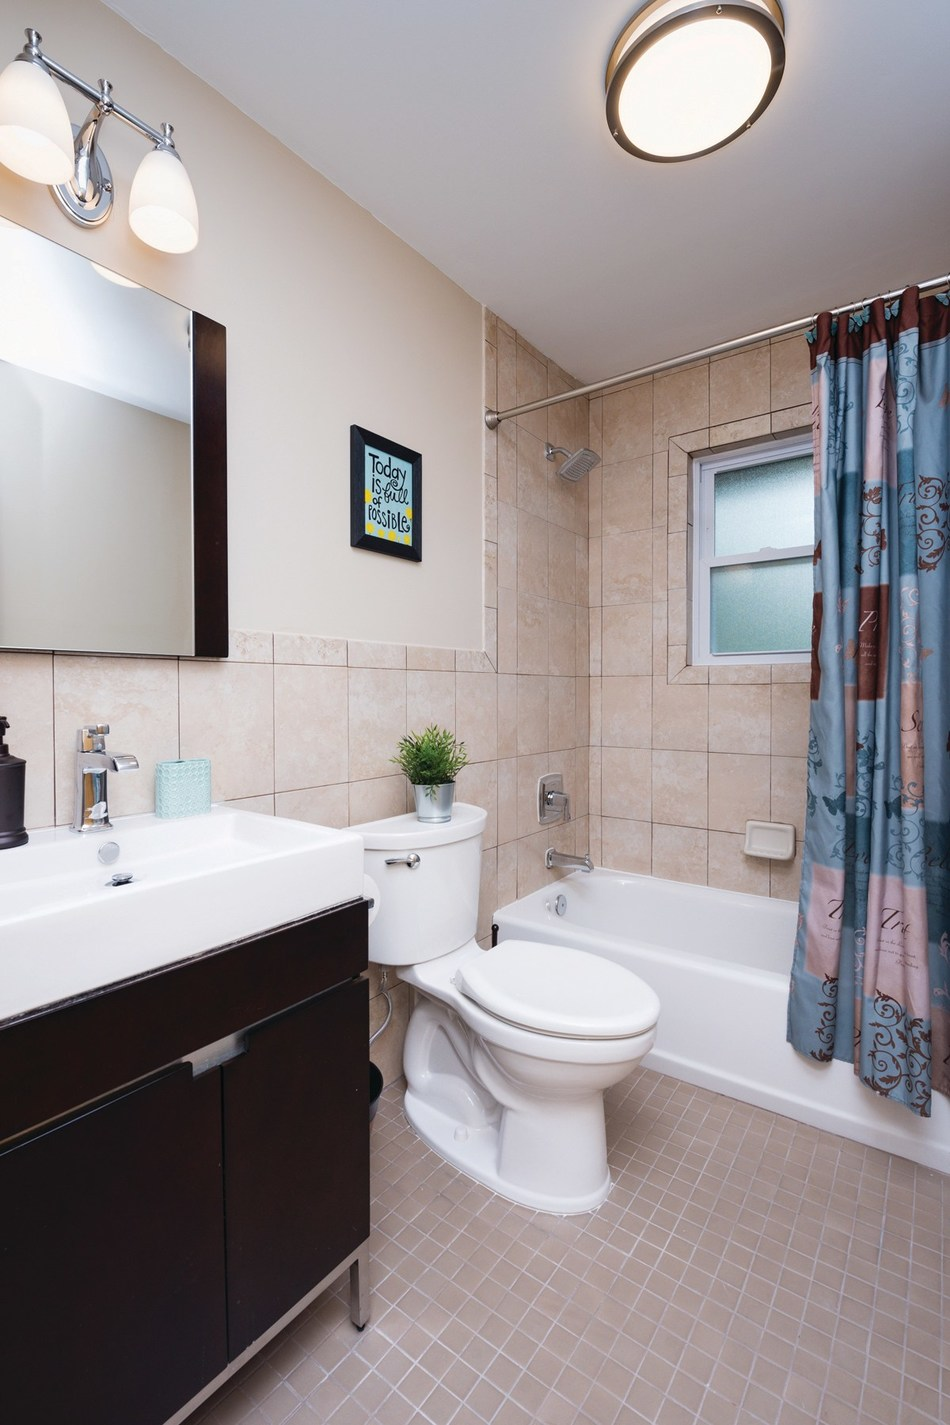 The 12 bathrooms in the Naomi's Way family shelter were recently given a makeover with product donations provided by American Standard, part of LIXIL, including new toilets, tubs, showers, faucets, sinks and vanities.